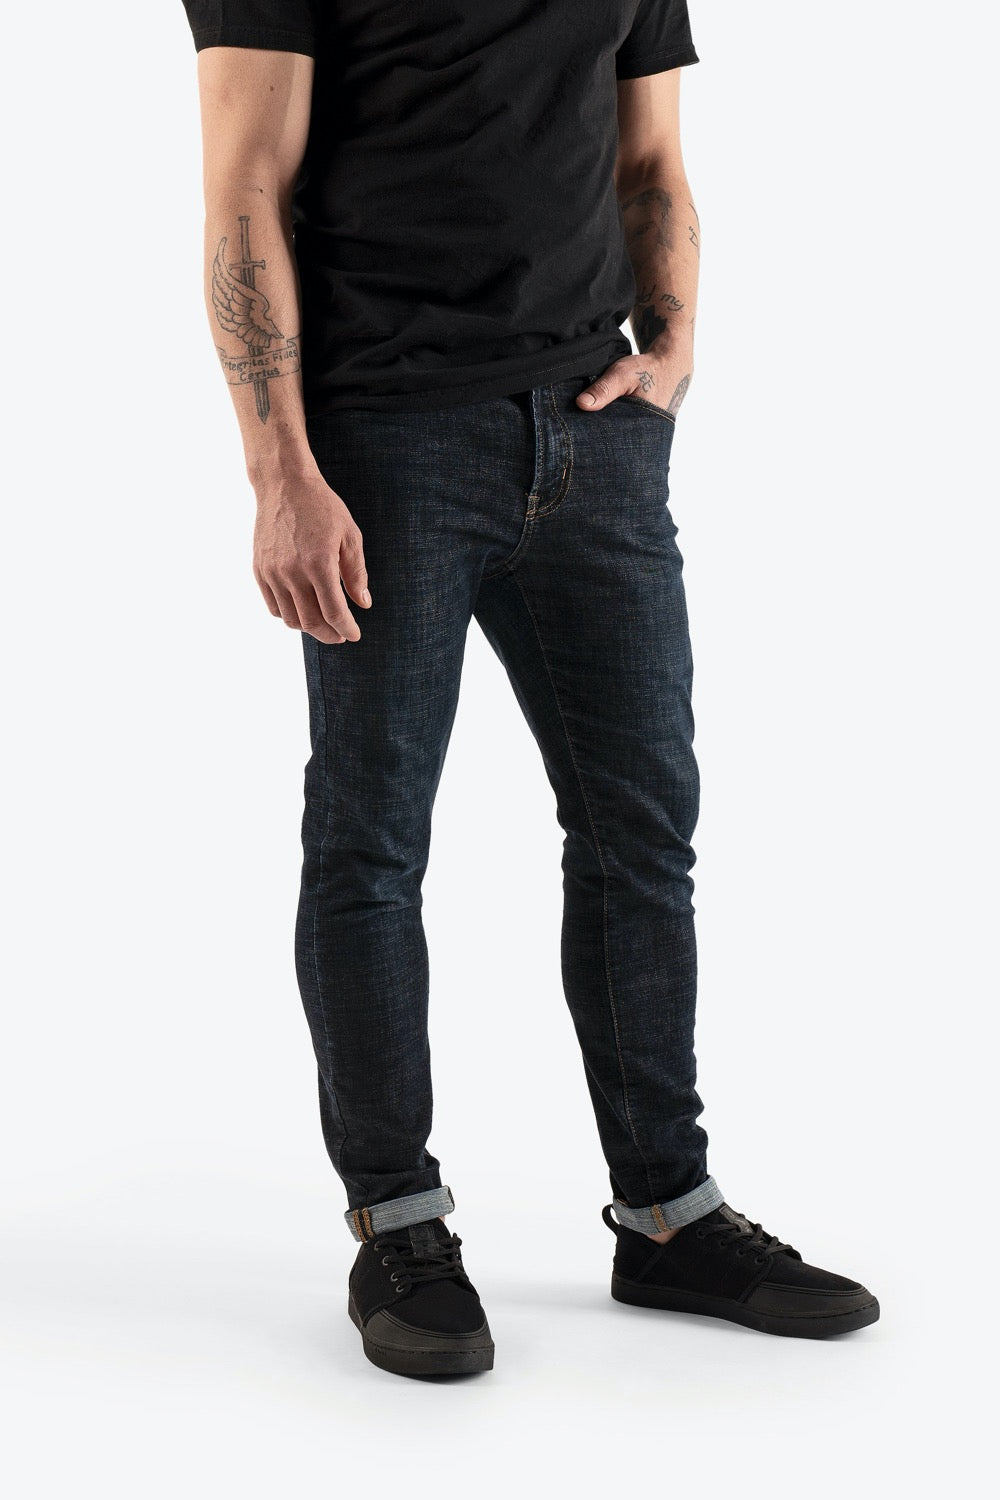 So iLL mens climbable blue denim with black shoes